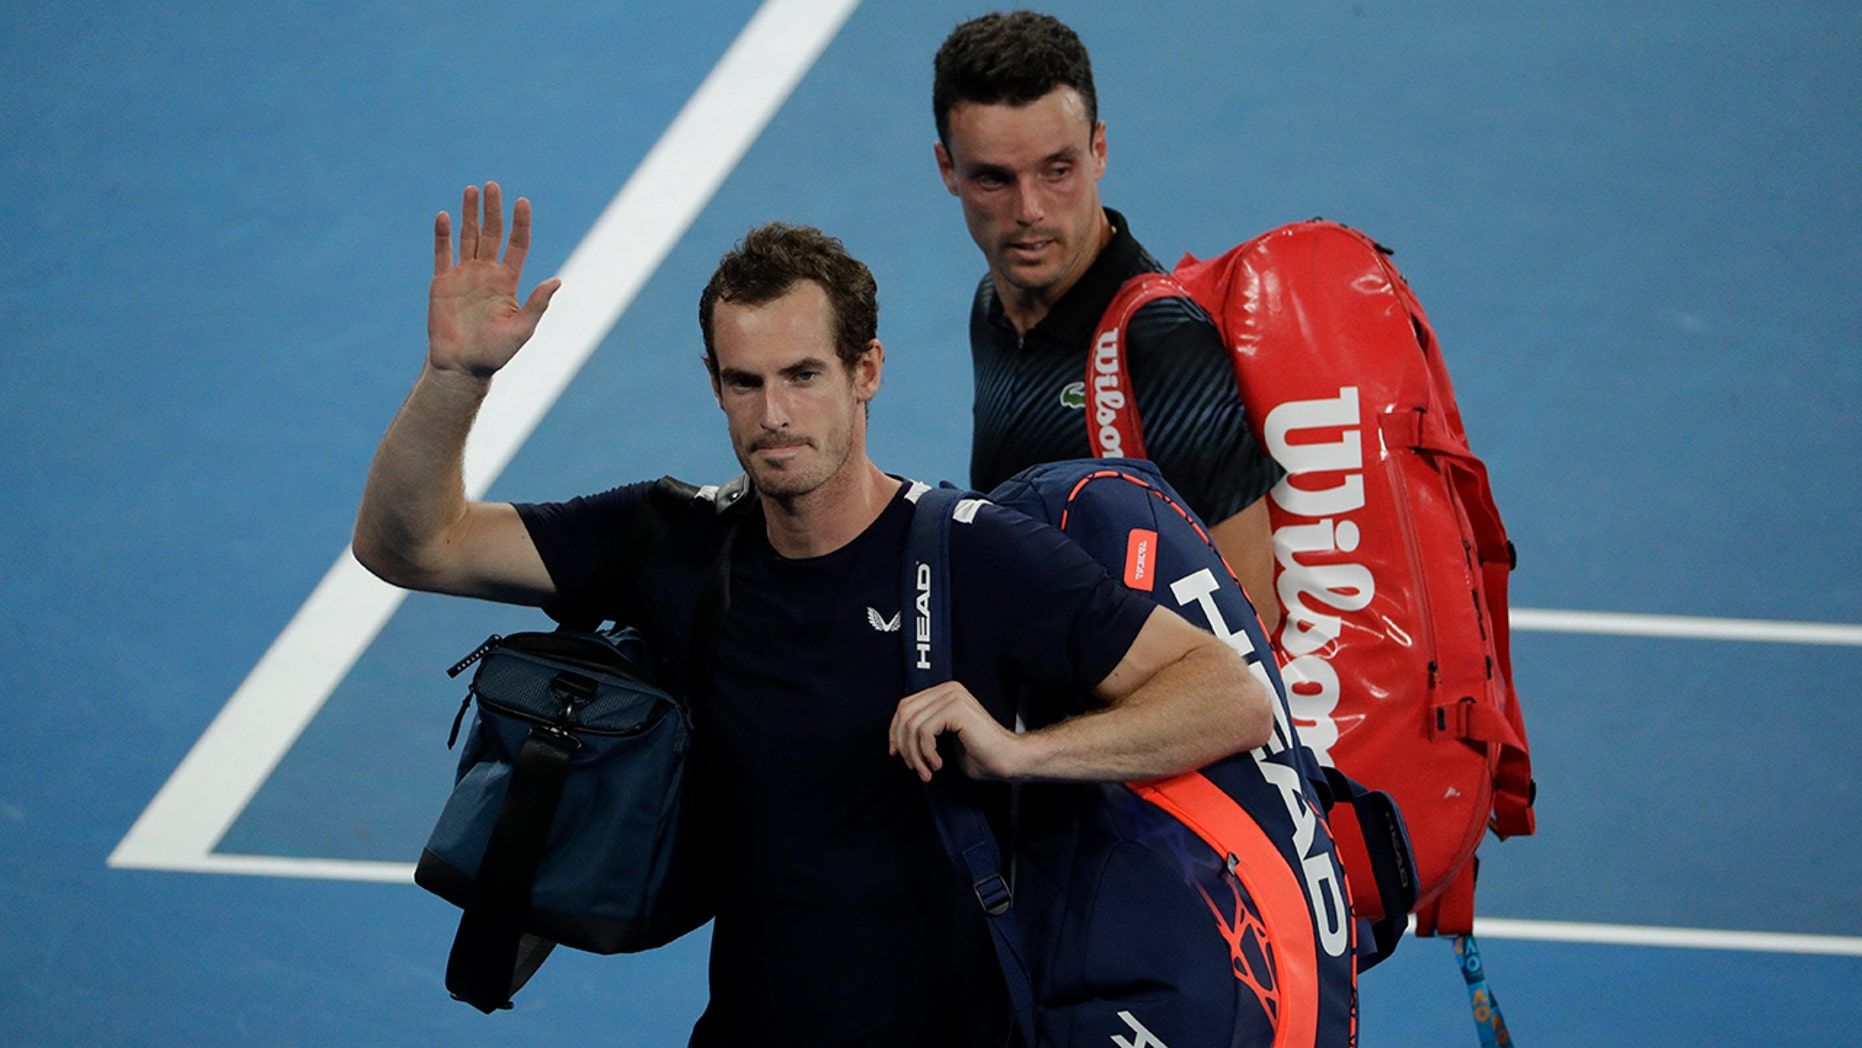 Britain's Andy Murray waves as he leaves a justice following his initial turn detriment to Spain's Roberto Bautista Agut during a Australian Open tennis championships in Melbourne, Australia, Monday, Jan. 14, 2019.